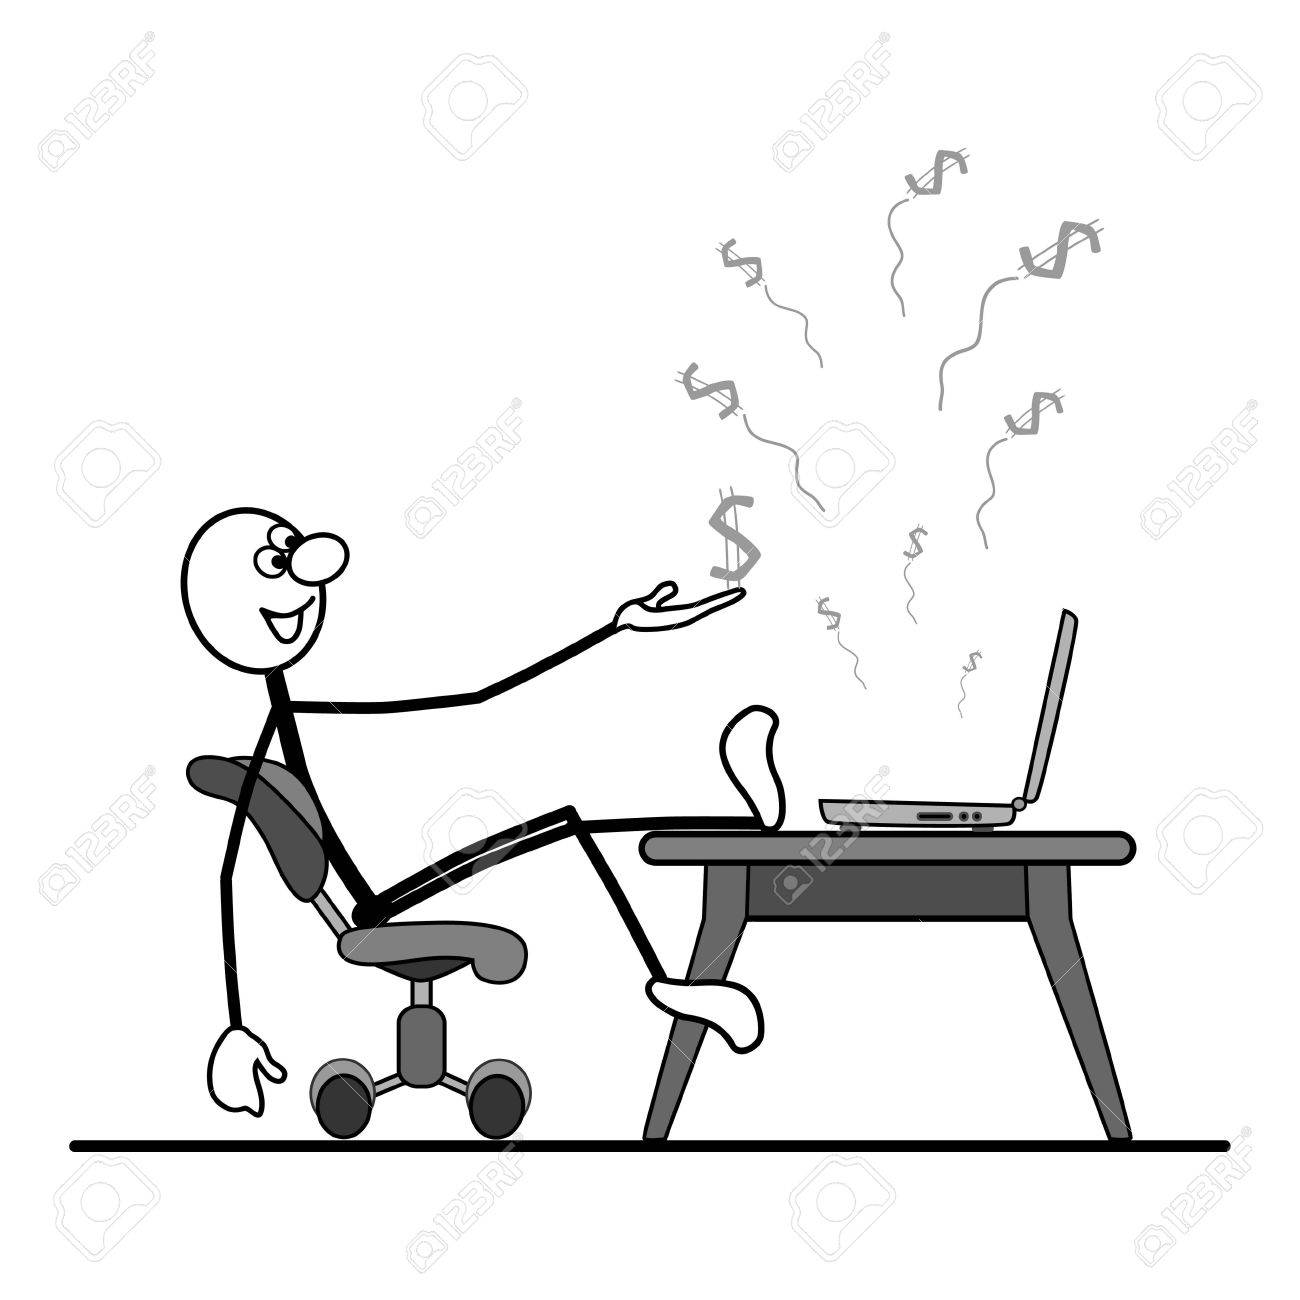 Man sitting in chair drawing - Man Sitting On A Chair On The Table Is A Computer Flying Dollars